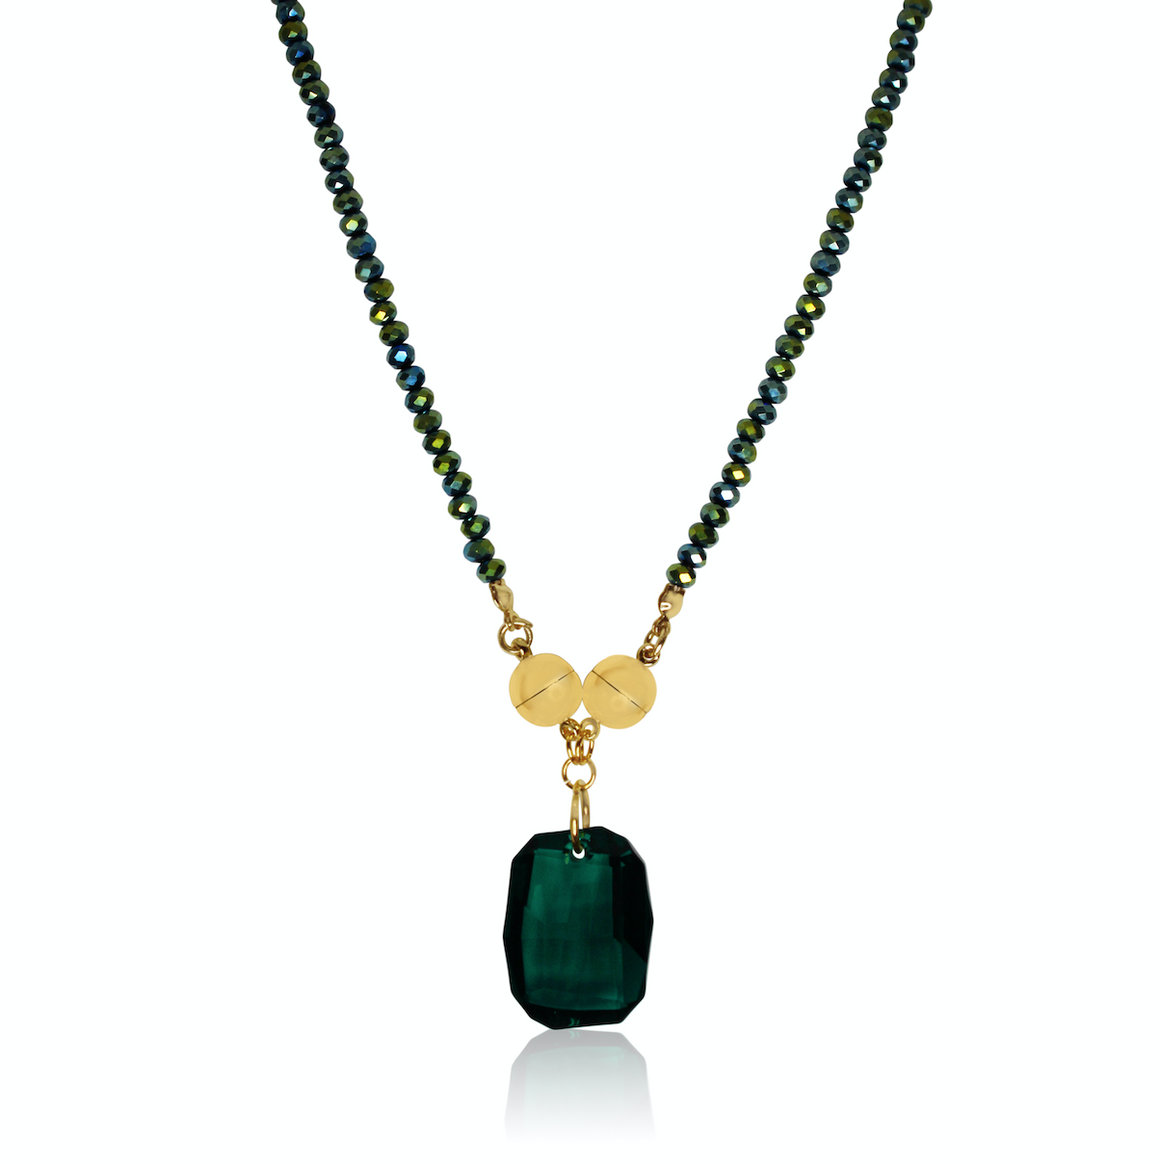 Cushion Crystal Pendant - Emerald  - choose your magnet colour